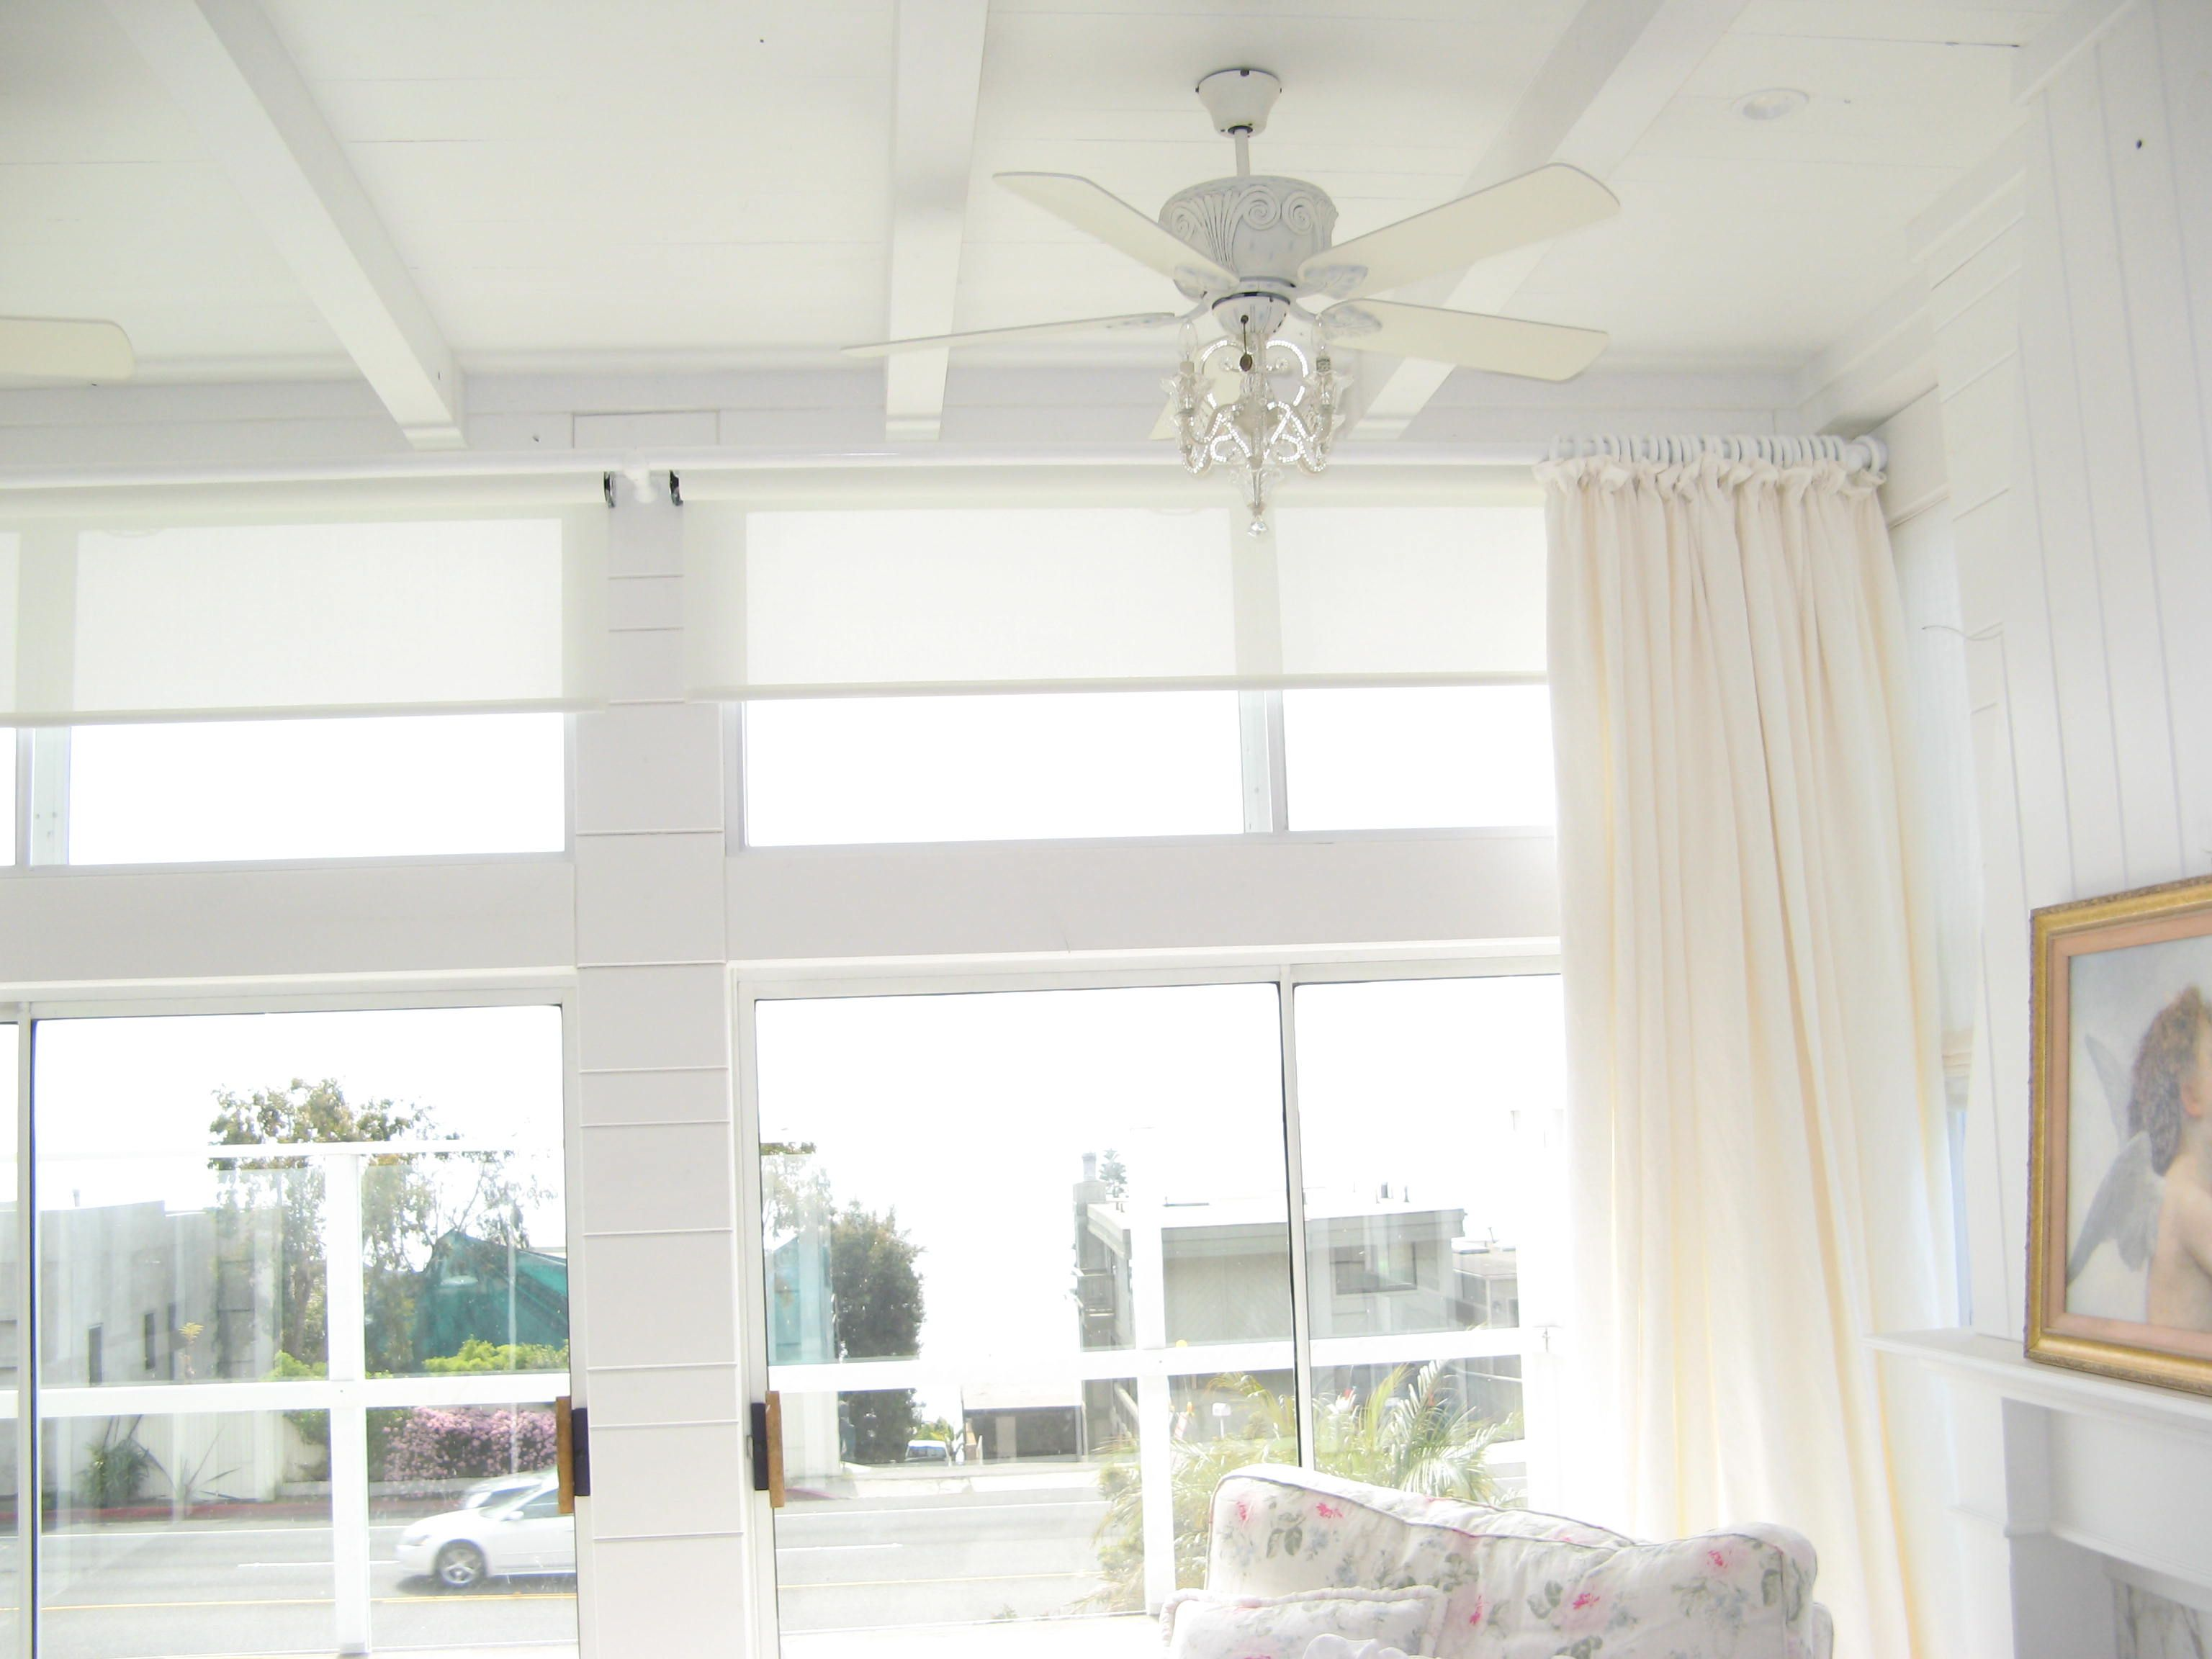 Soft, Warm and Casual. Motorized Solar Shades with Shabby Heading Stationary Drapes on White wood pole.